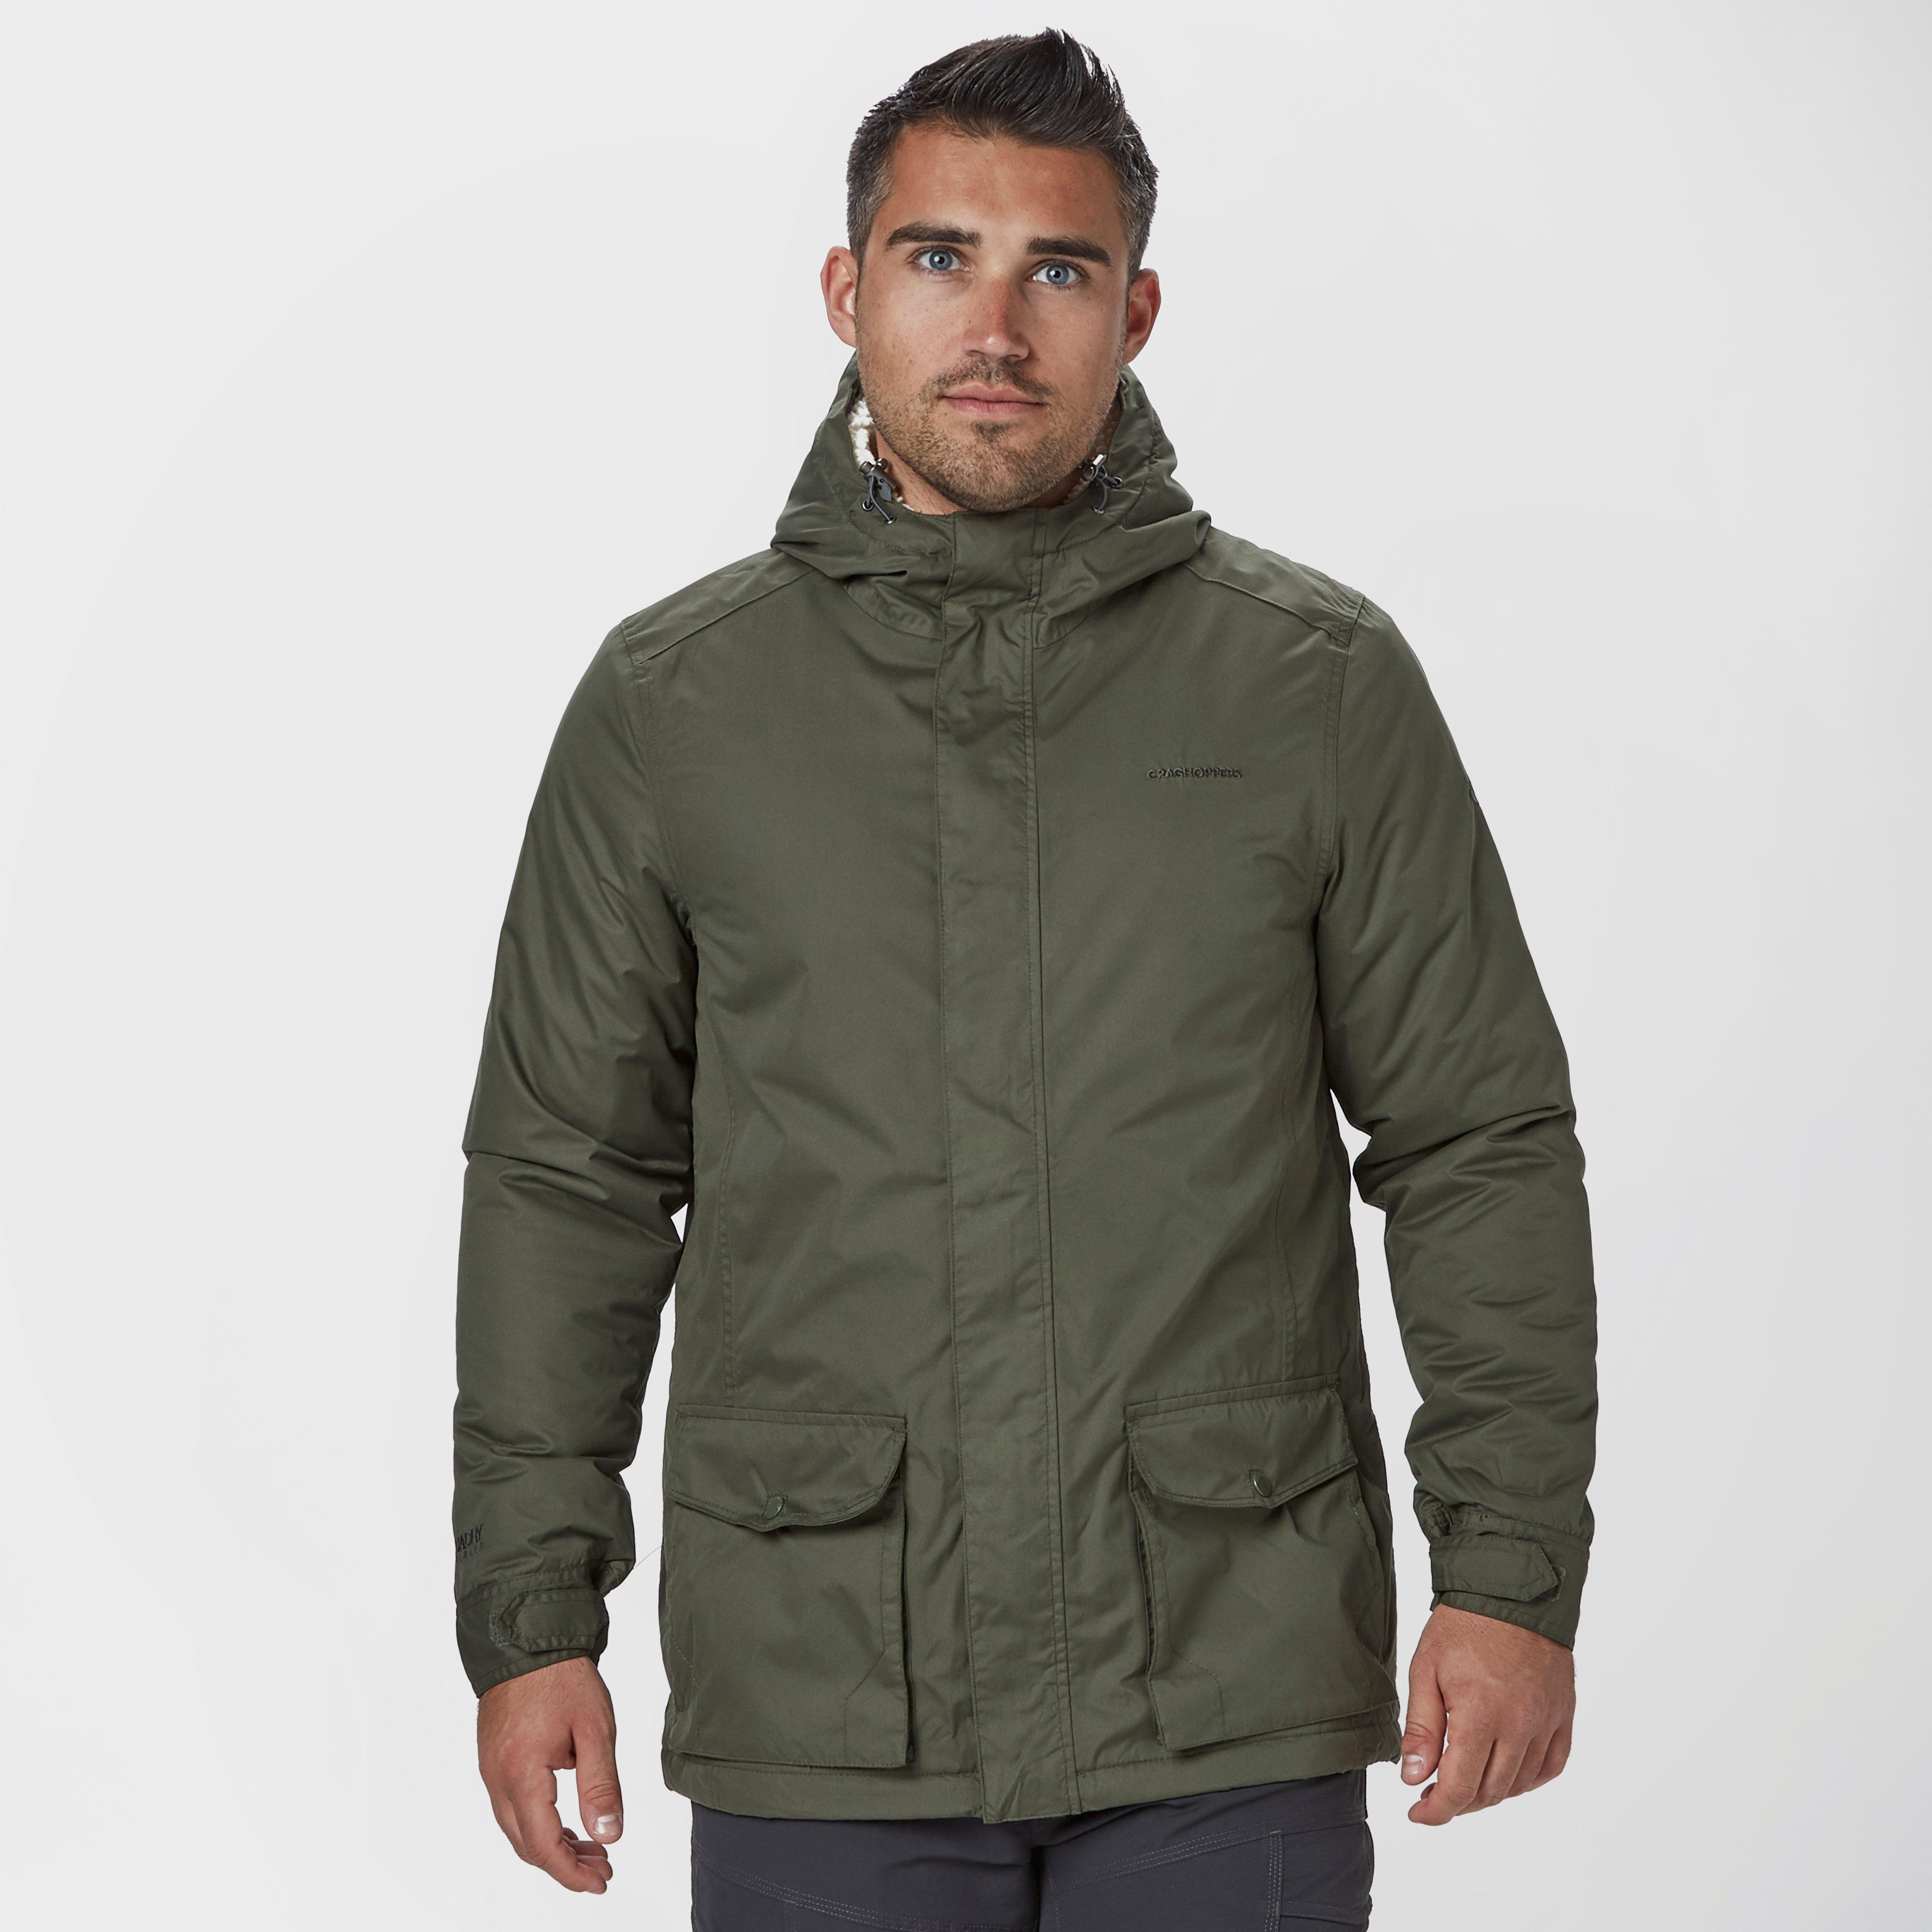 asp jacket discounted quilted sell quilt mens barbour sale gold